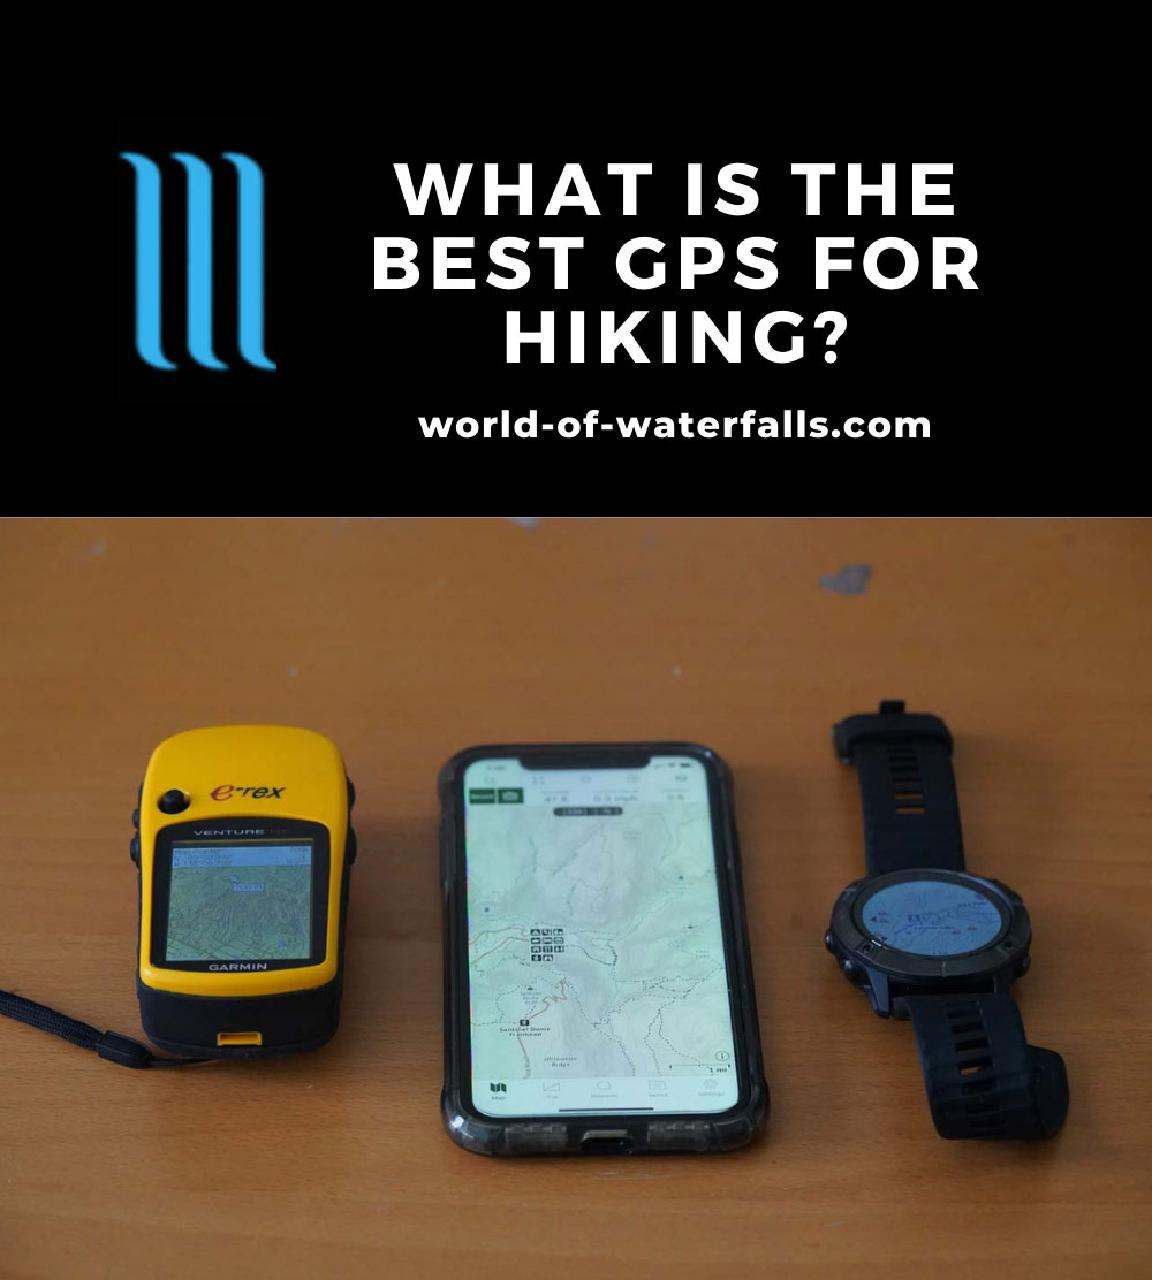 A Dedicated Handheld GPS Unit, A Smart Phone, And A GPS Smart Watch - Three Types Of Devices I've Used On Our Waterfall Hikes Over The Years